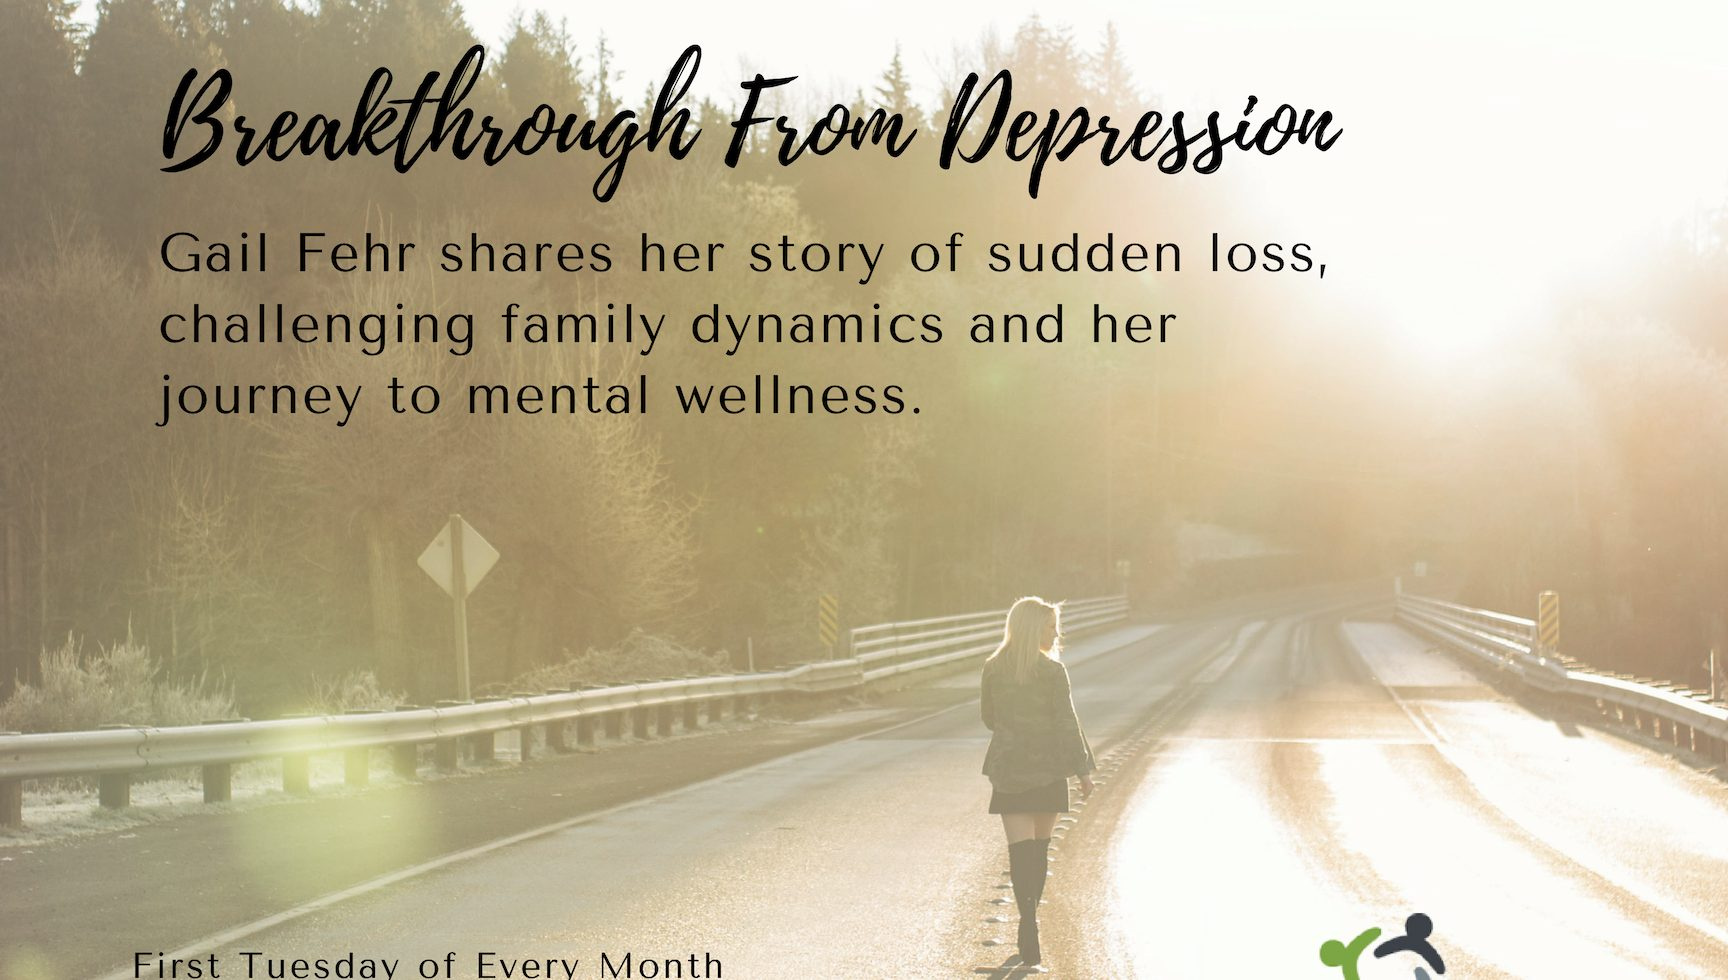 HERstory  – Breakthrough from Depression by Gail Fehr